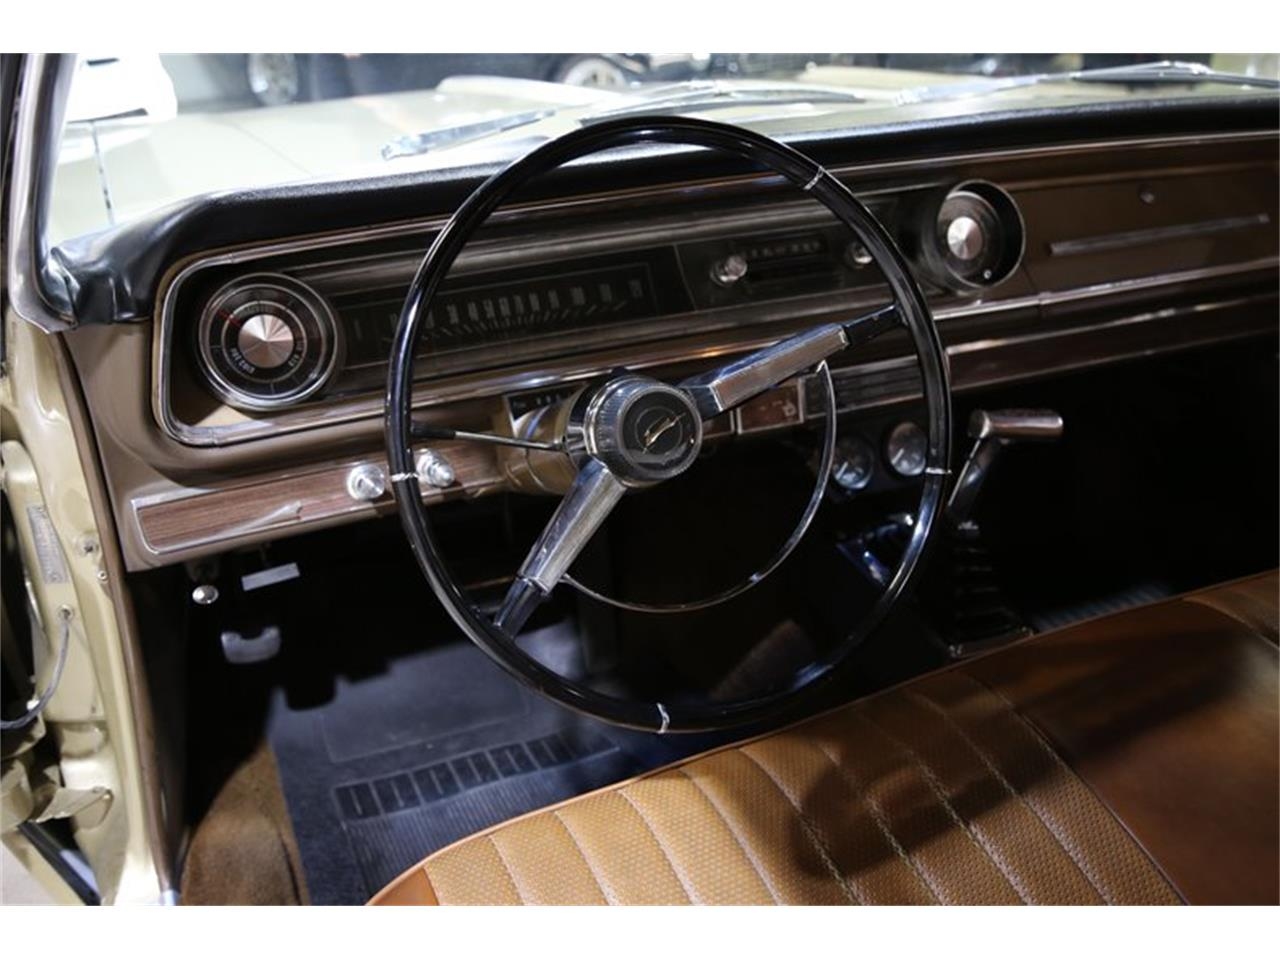 1965 Chevrolet Impala (CC-1417578) for sale in Chatsworth, California